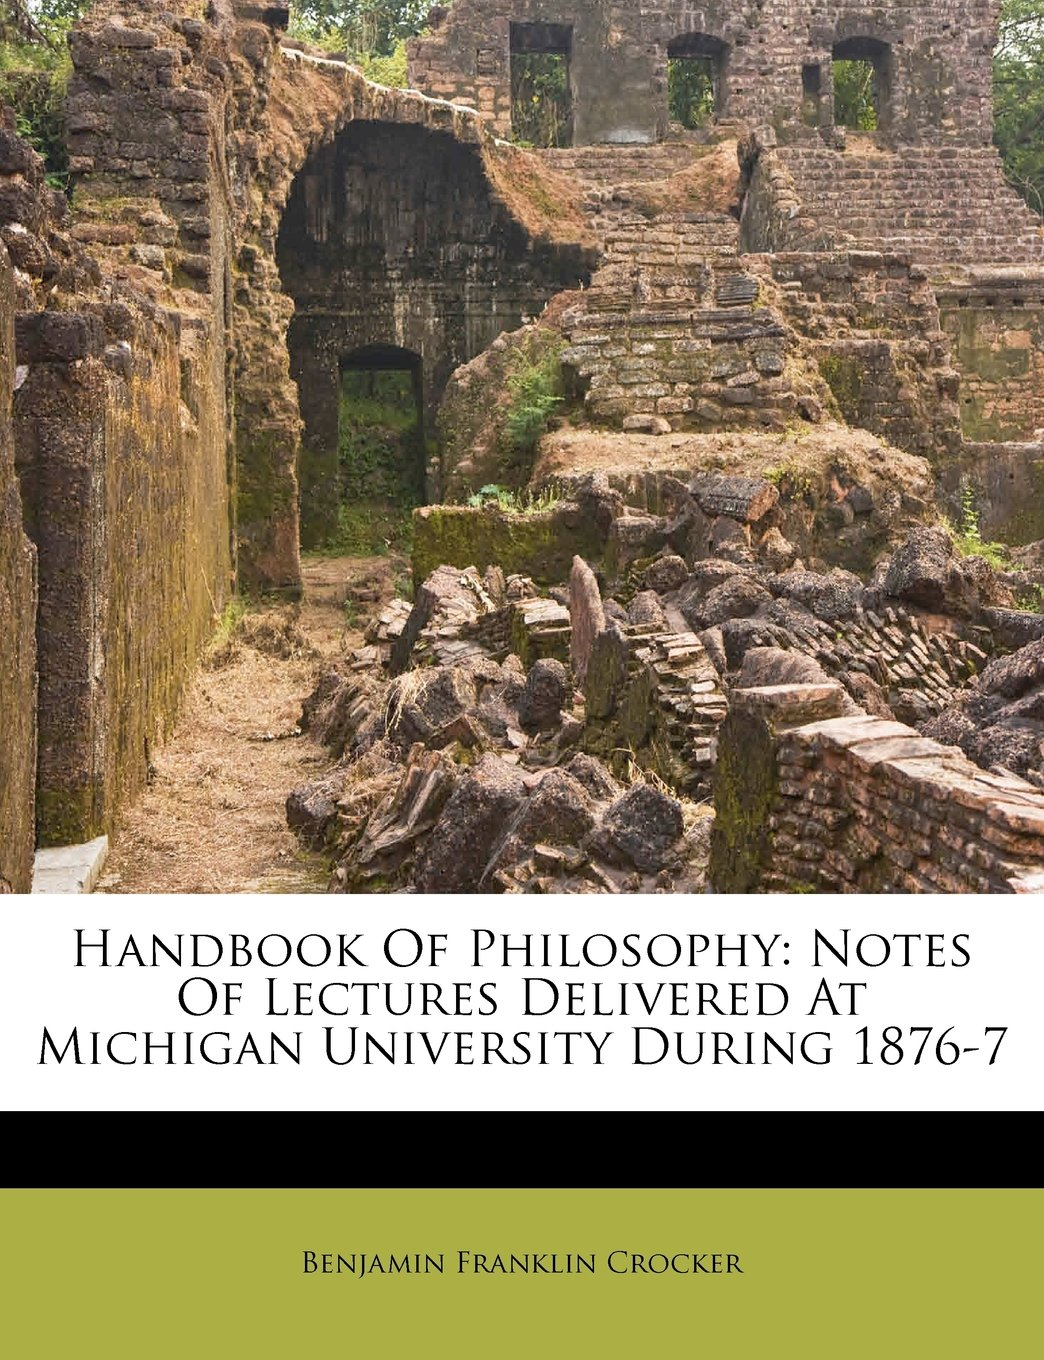 Download Handbook Of Philosophy: Notes Of Lectures Delivered At Michigan University During 1876-7 pdf